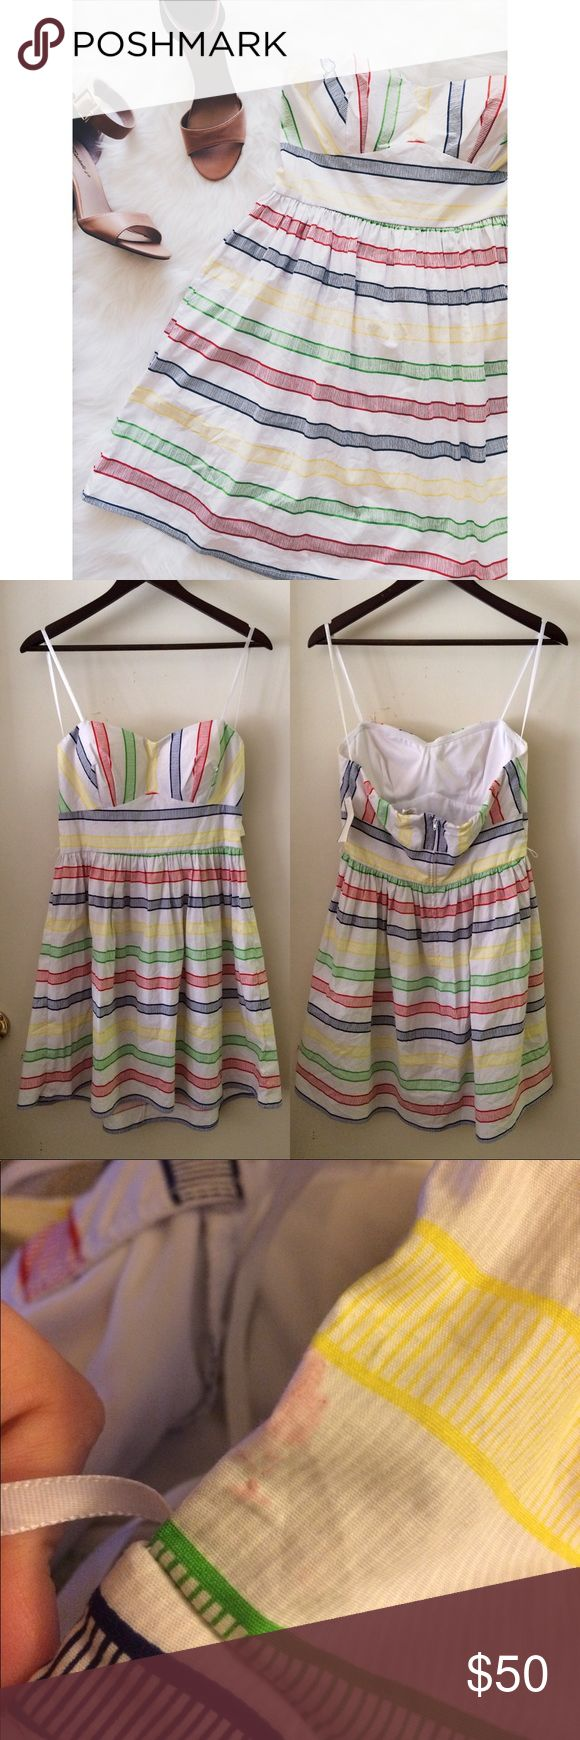 Rainbow Striped Dress This dress does have a tag, but it does have a pink mark (probably can be washed out) on the right armpit area. Has belt holes, but no belt. Back zipper. Thin padding. No modeling. Cotton, Spandex, Polyester. 0409173.  ✅Reasonable offers welcome! ✅BUNDLE DISCOUNTS! 🚫No trades/paypal/other apps. 🚫No lowball offers. B. Smart Dresses Strapless